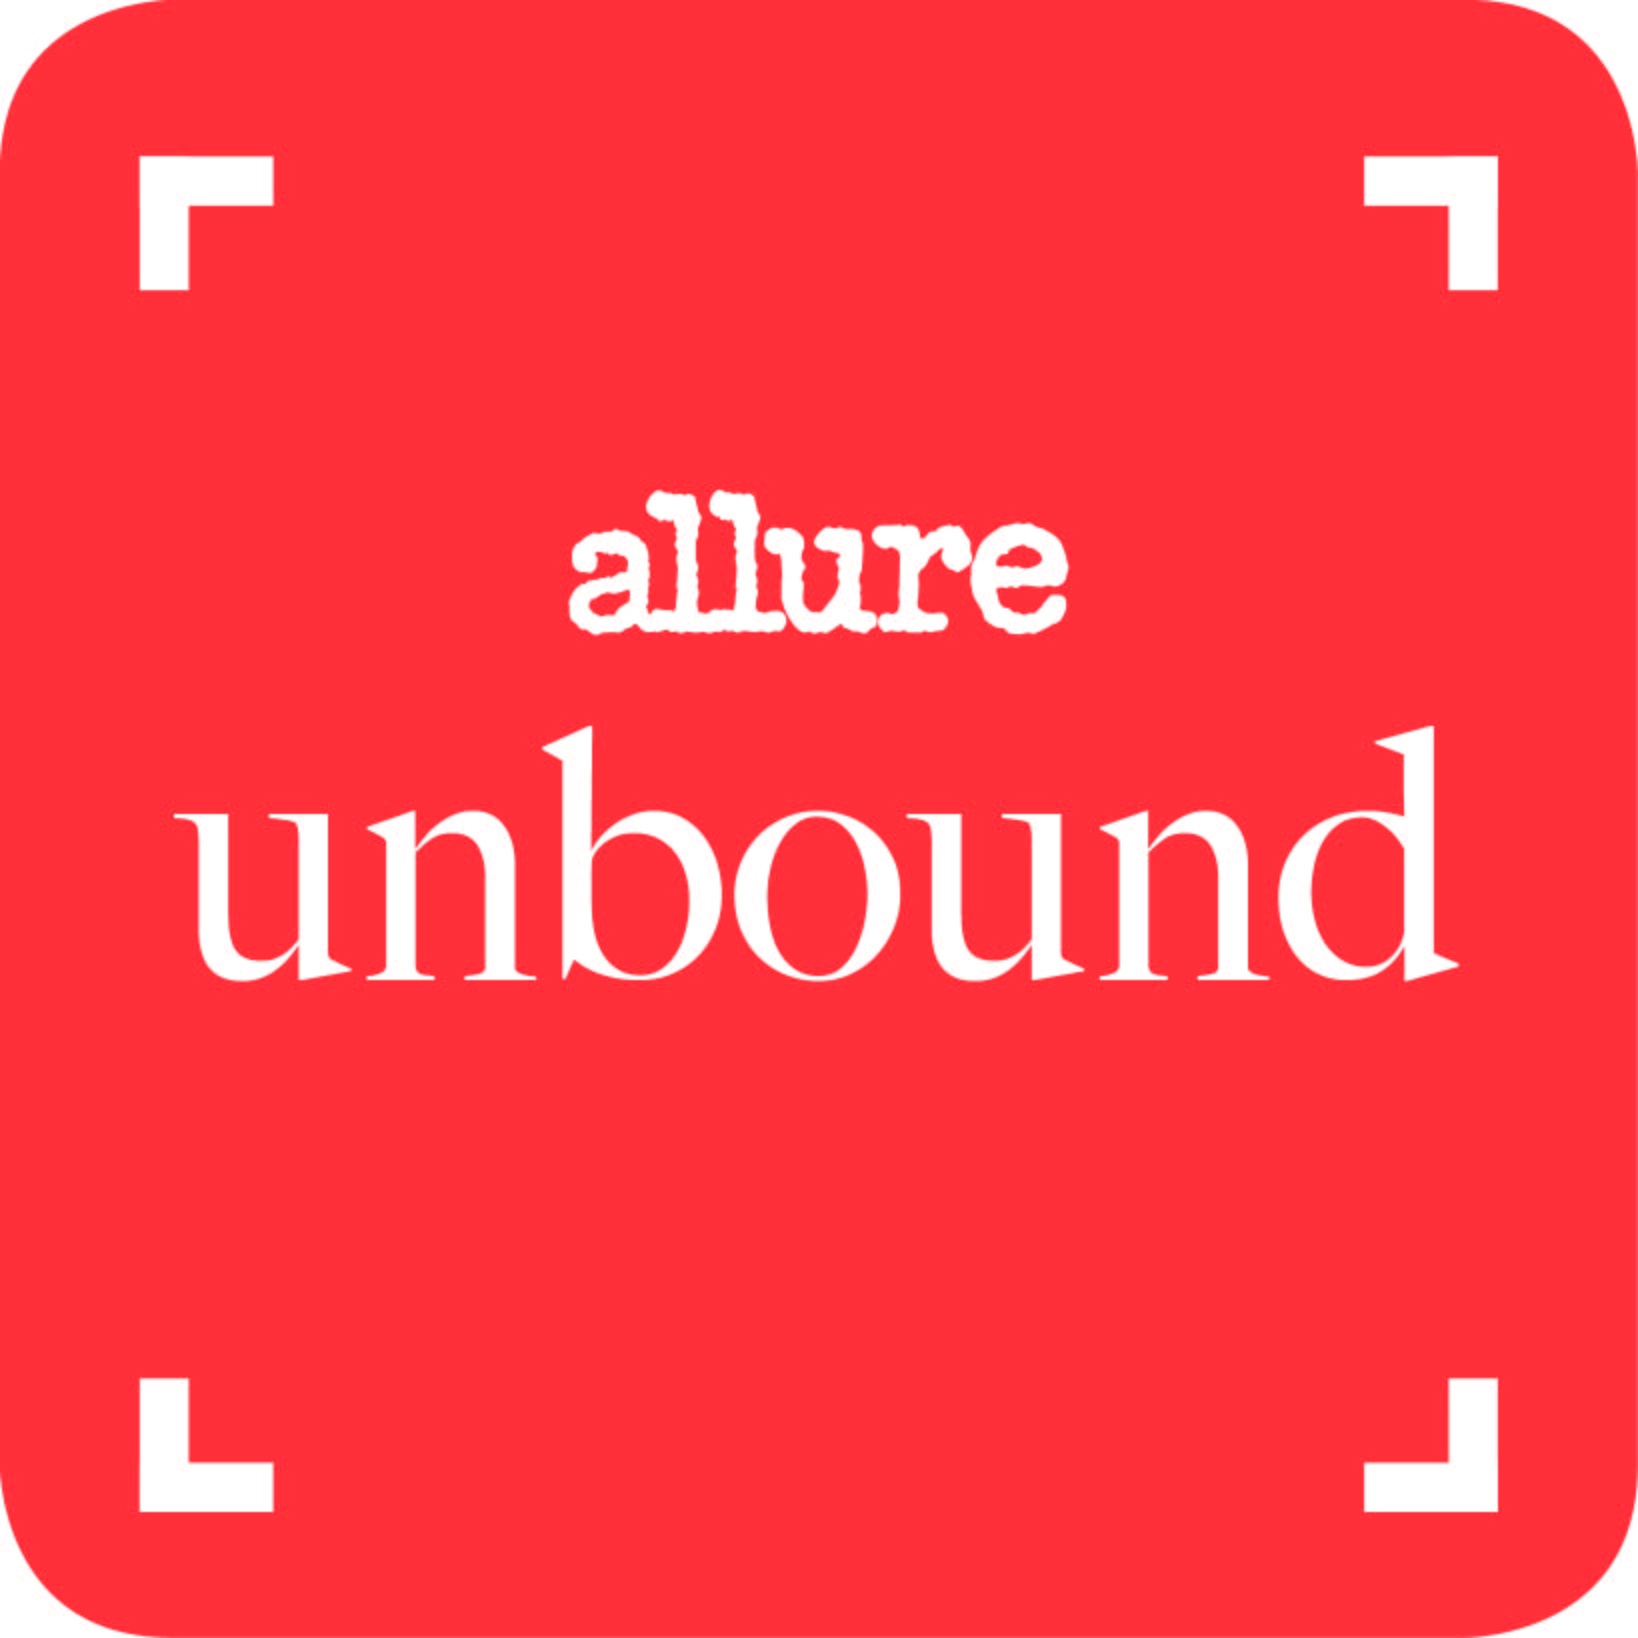 Thumbnail for Allure Unbound